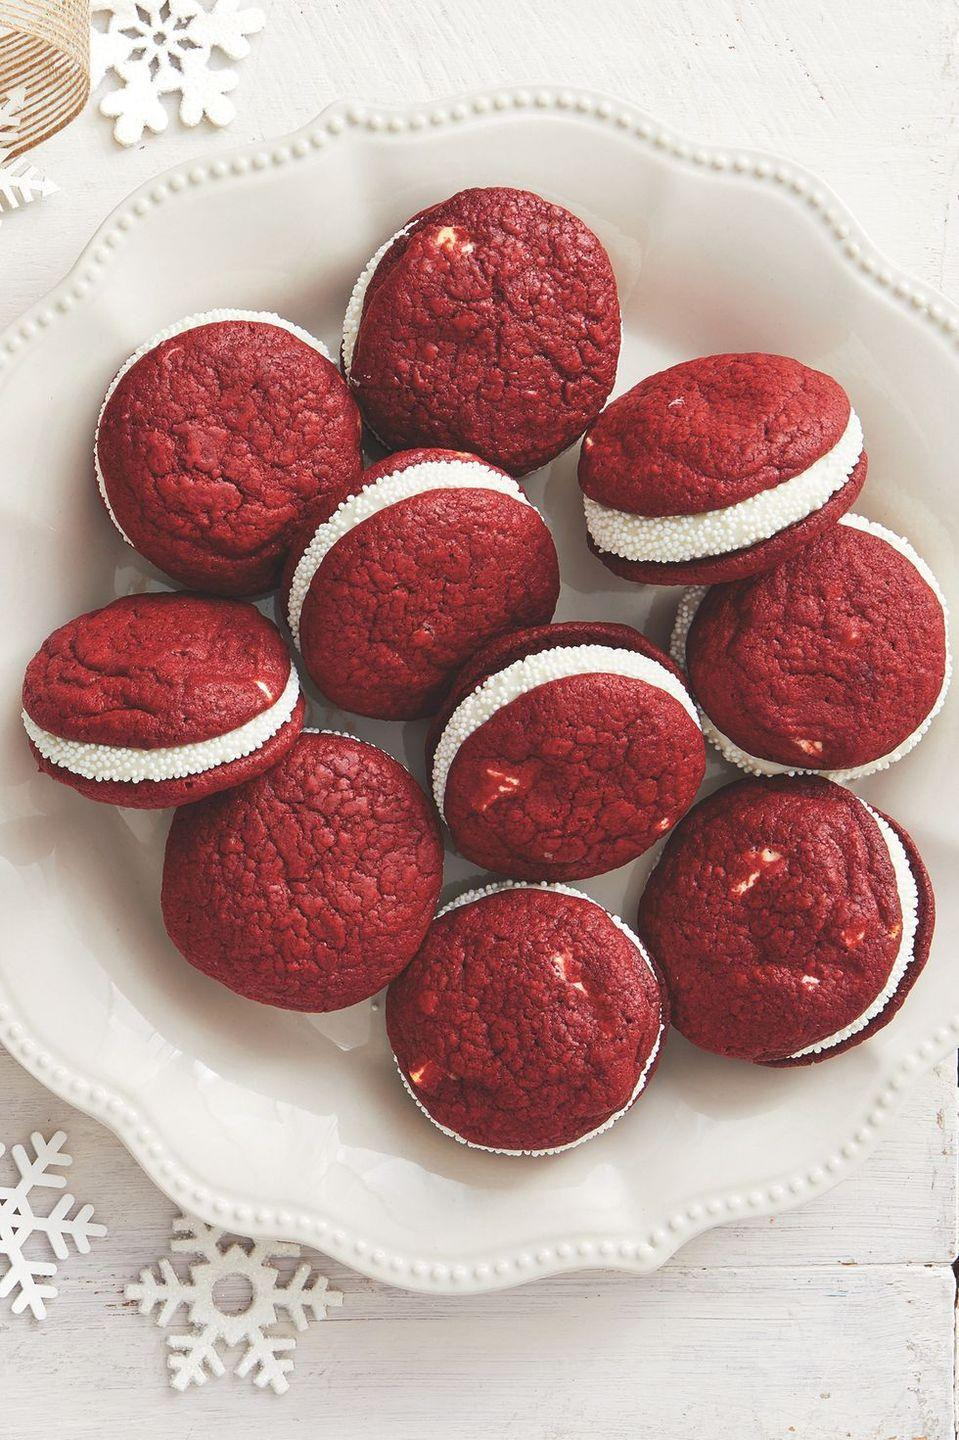 "<p>Not a cake person? These soft, red velvet cookies will make you—and your birthday party guests—swoon. </p><p><strong><a href=""https://www.thepioneerwoman.com/food-cooking/recipes/a34145278/red-velvet-sandwich-cookies-recipe/"" rel=""nofollow noopener"" target=""_blank"" data-ylk=""slk:Get Ree's recipe."" class=""link rapid-noclick-resp"">Get Ree's recipe.</a></strong></p><p><a class=""link rapid-noclick-resp"" href=""https://go.redirectingat.com?id=74968X1596630&url=https%3A%2F%2Fwww.walmart.com%2Fip%2F2-pack-Great-Value-Non-Pareil-Sprinkles-White-3-15-oz%2F514679959&sref=https%3A%2F%2Fwww.thepioneerwoman.com%2Fhome-lifestyle%2Fentertaining%2Fg34192298%2F50th-birthday-party-ideas%2F"" rel=""nofollow noopener"" target=""_blank"" data-ylk=""slk:SHOP WHITE NONPAREILS"">SHOP WHITE NONPAREILS </a></p>"